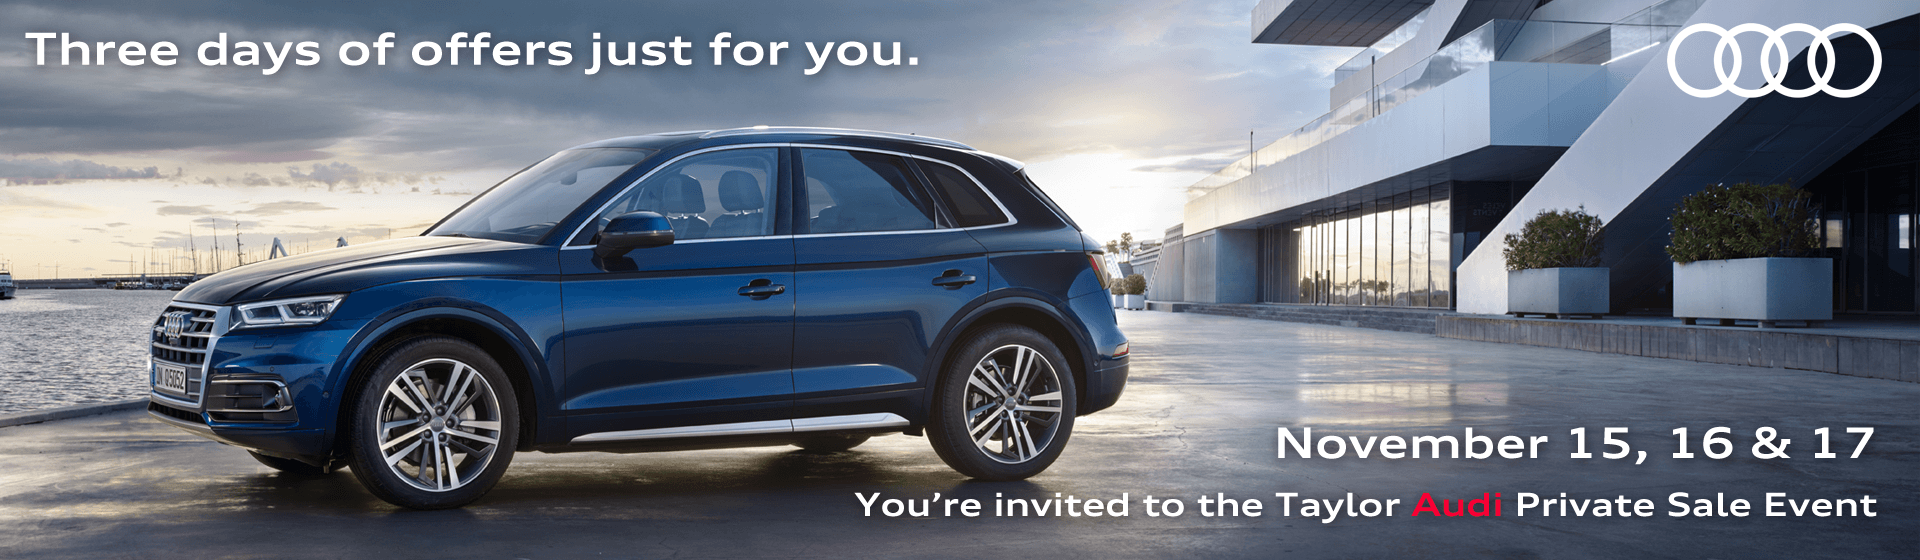 Taylor Audi Private Sales Event